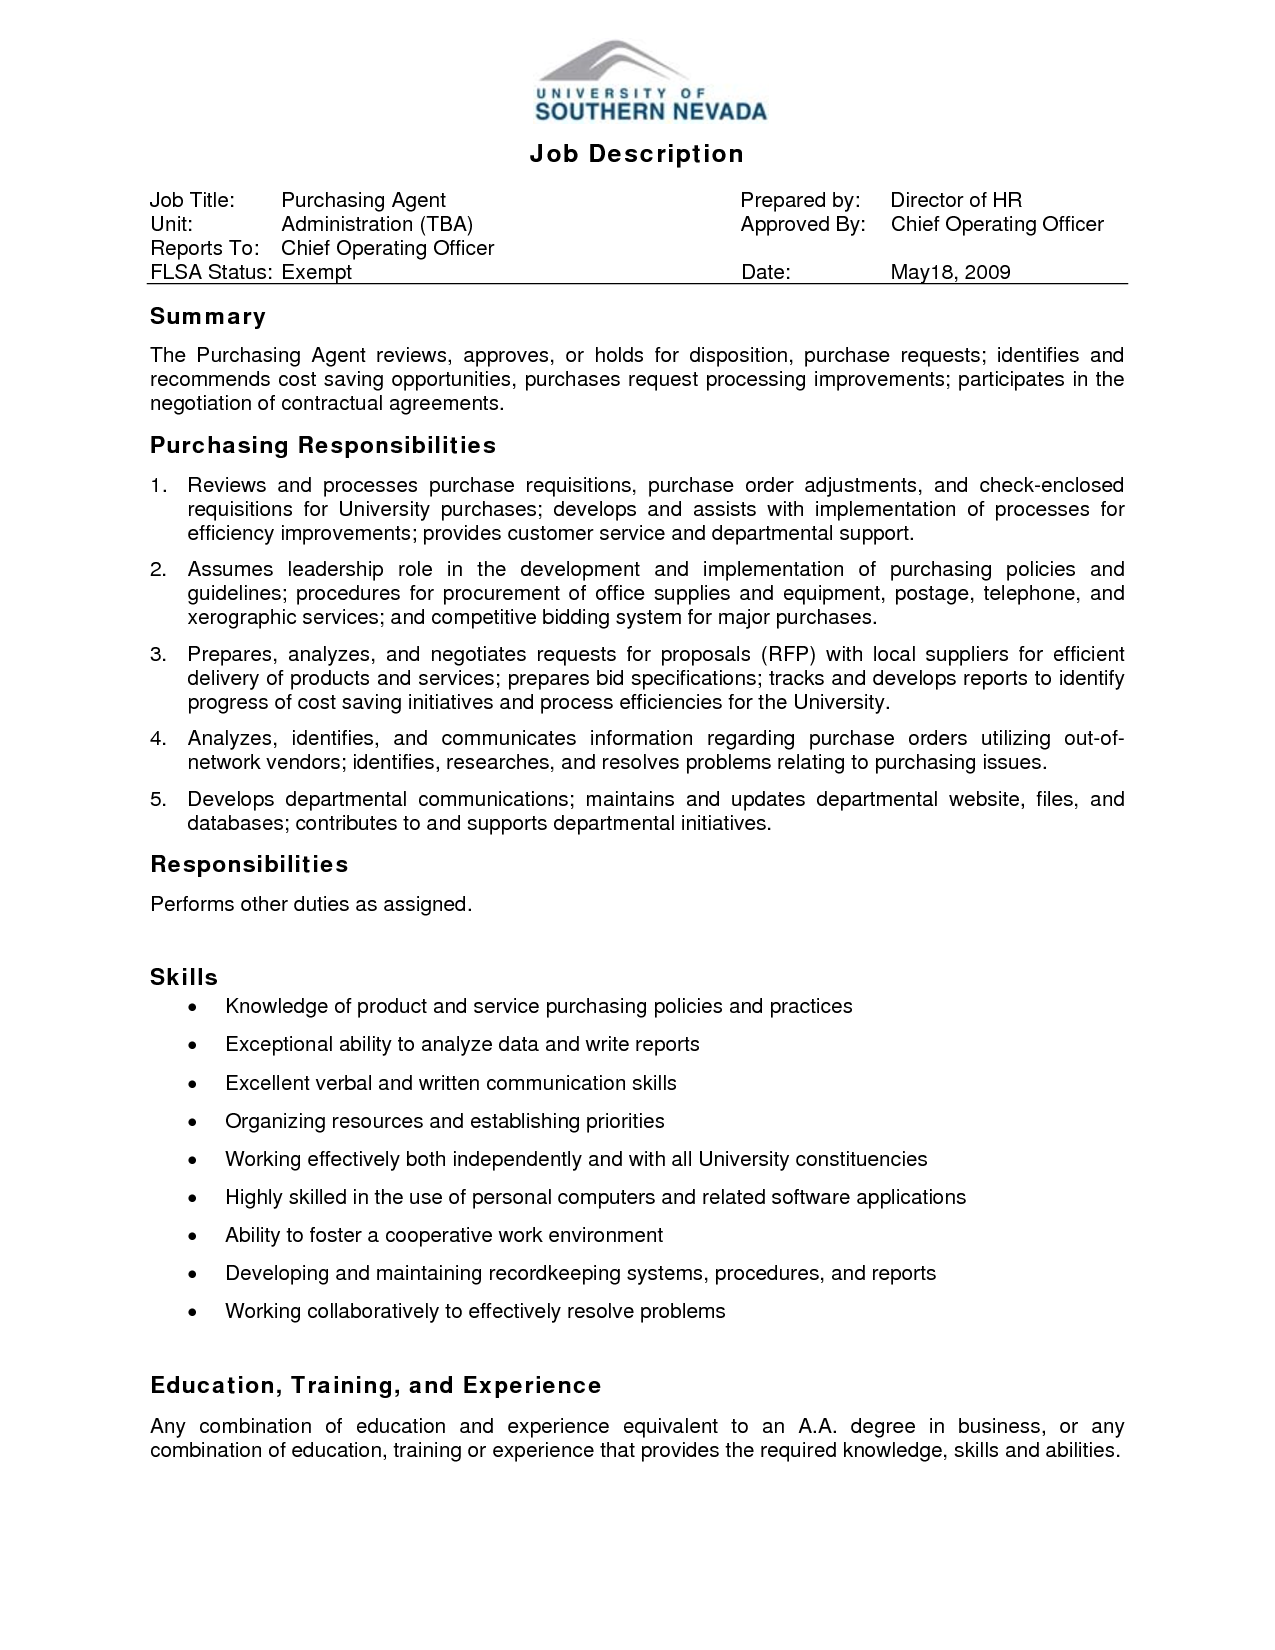 Merveilleux Administrative Assistant Duties Cover Letter Job Description Administrative  Assistant